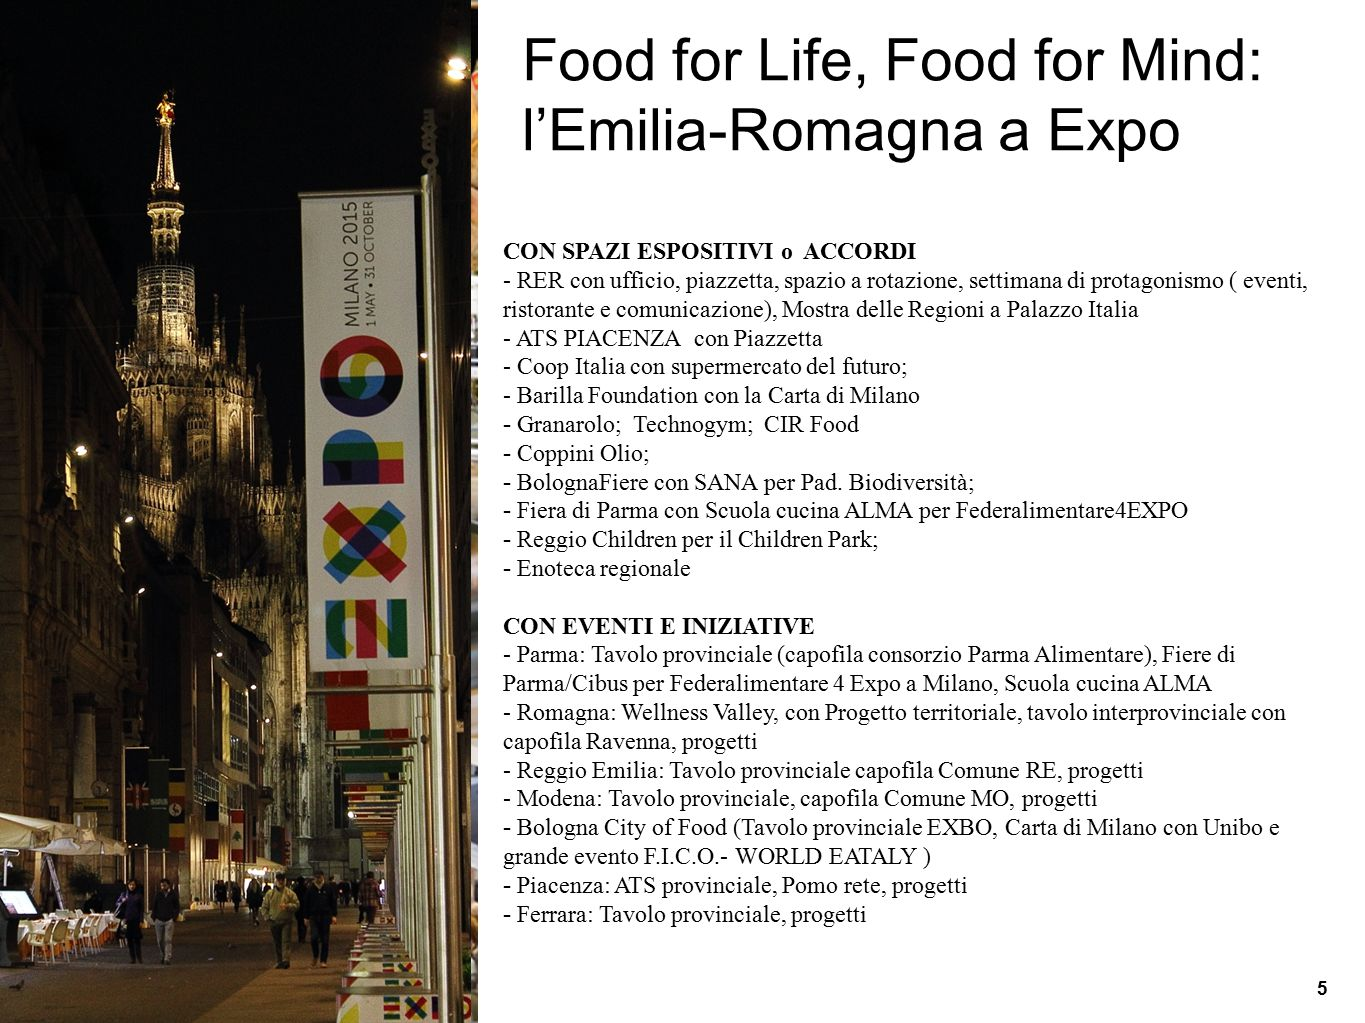 Food for Life, Food for Mind: l'Emilia-Romagna a Expo